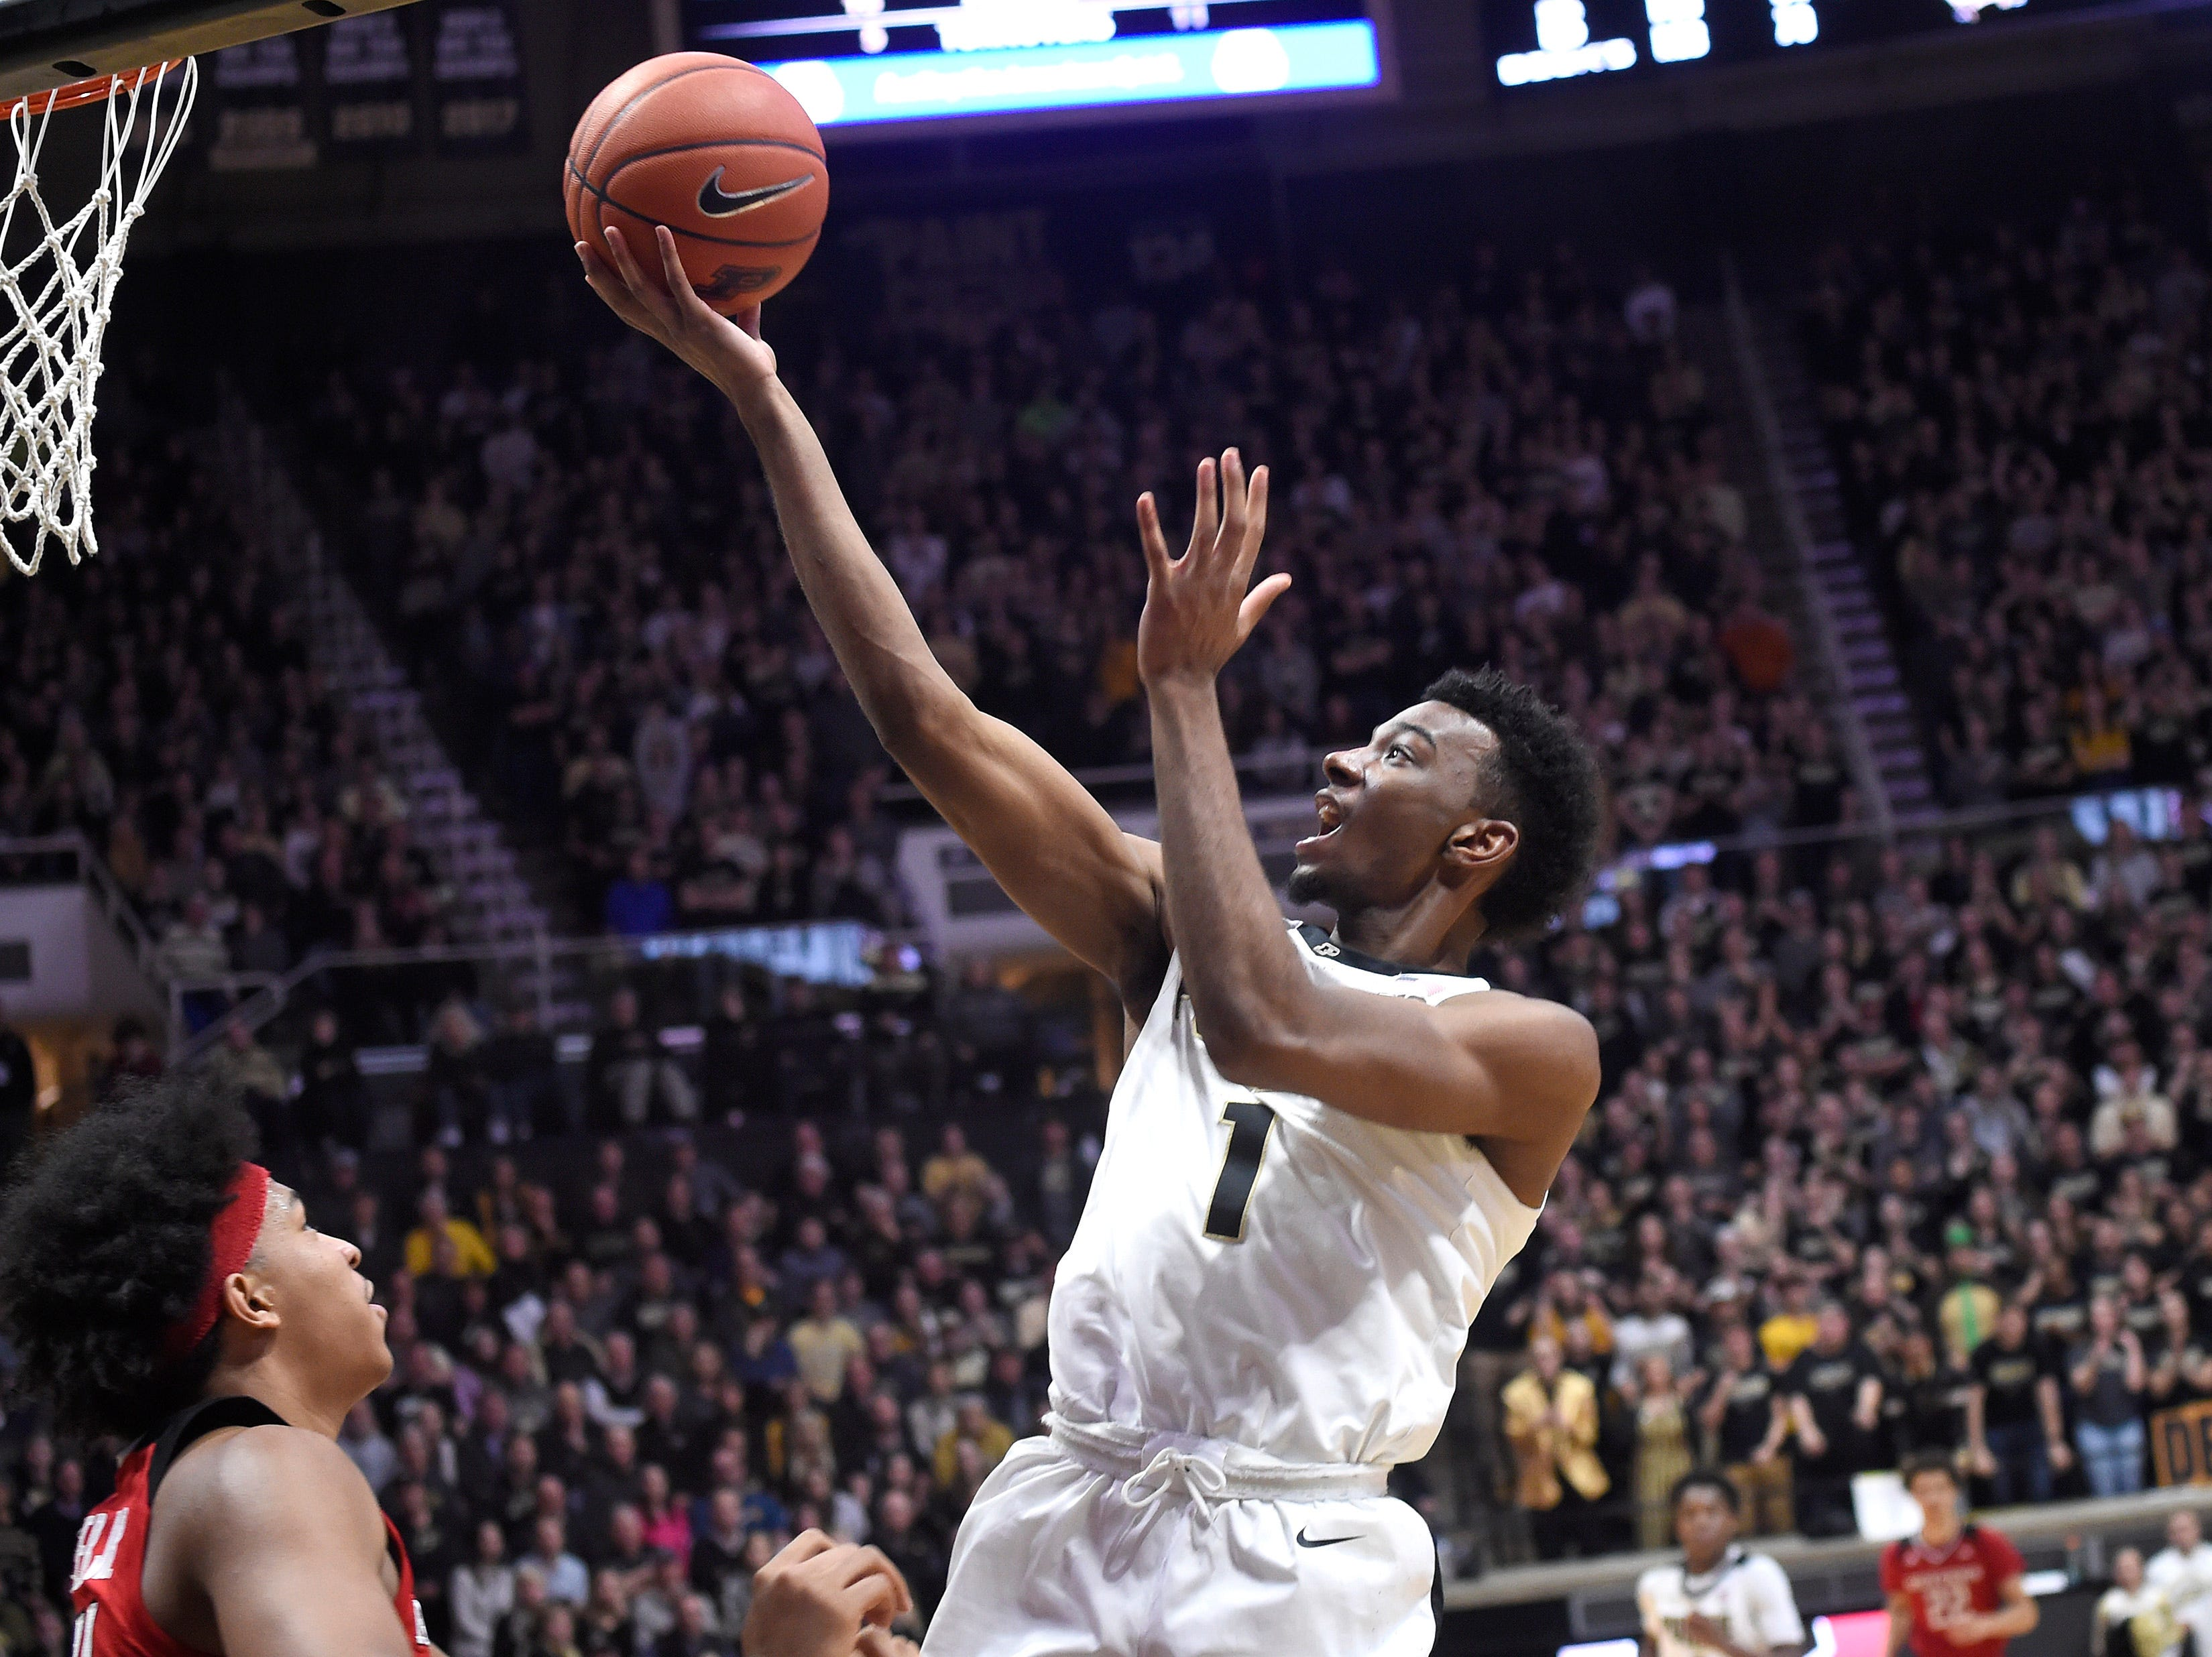 Jan 15, 2019; West Lafayette, IN, USA; Purdue Boilermakers forward Aaron Wheeler (1) goes up for a layup in the game against the Rutgers Scarlet Knights in the 2nd half at Mackey Arena. Mandatory Credit: Sandra Dukes-USA TODAY Sports